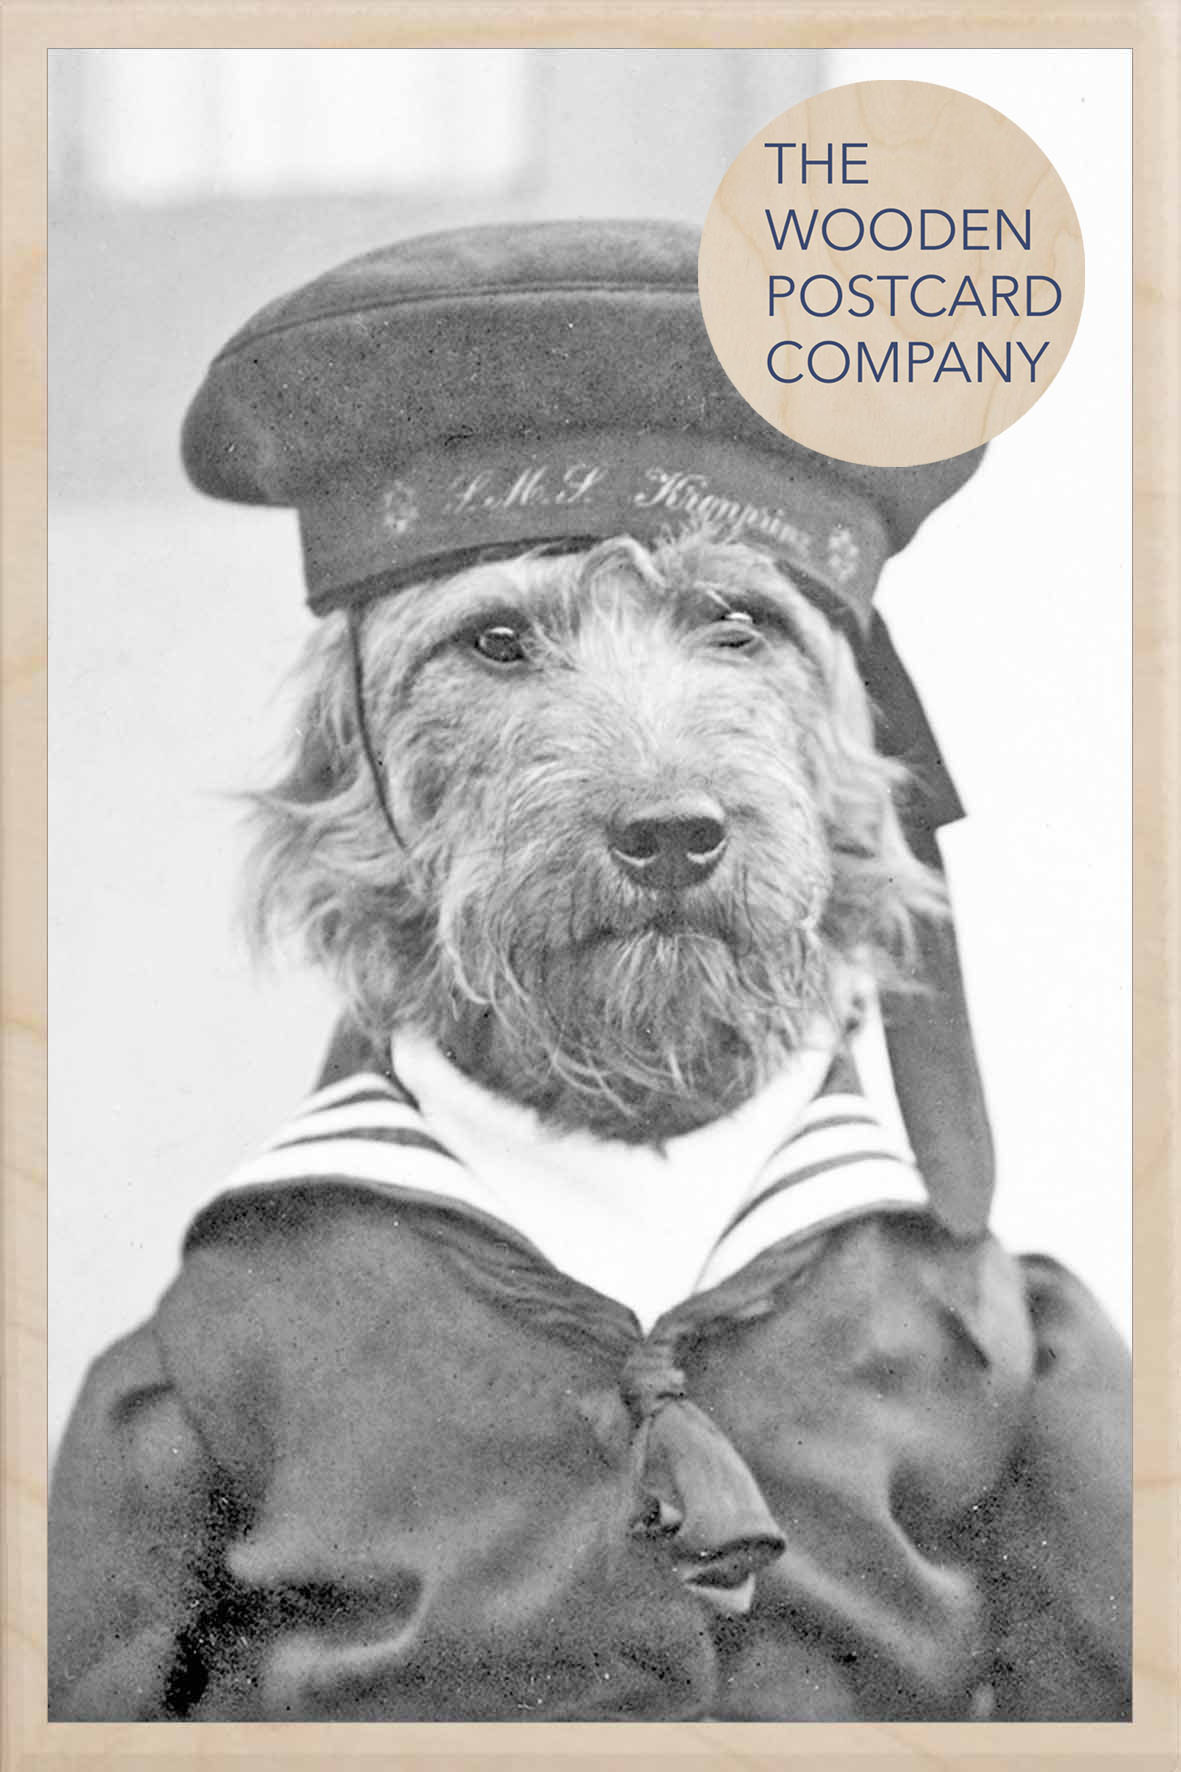 the wooden postcard company hms dog copy.jpg